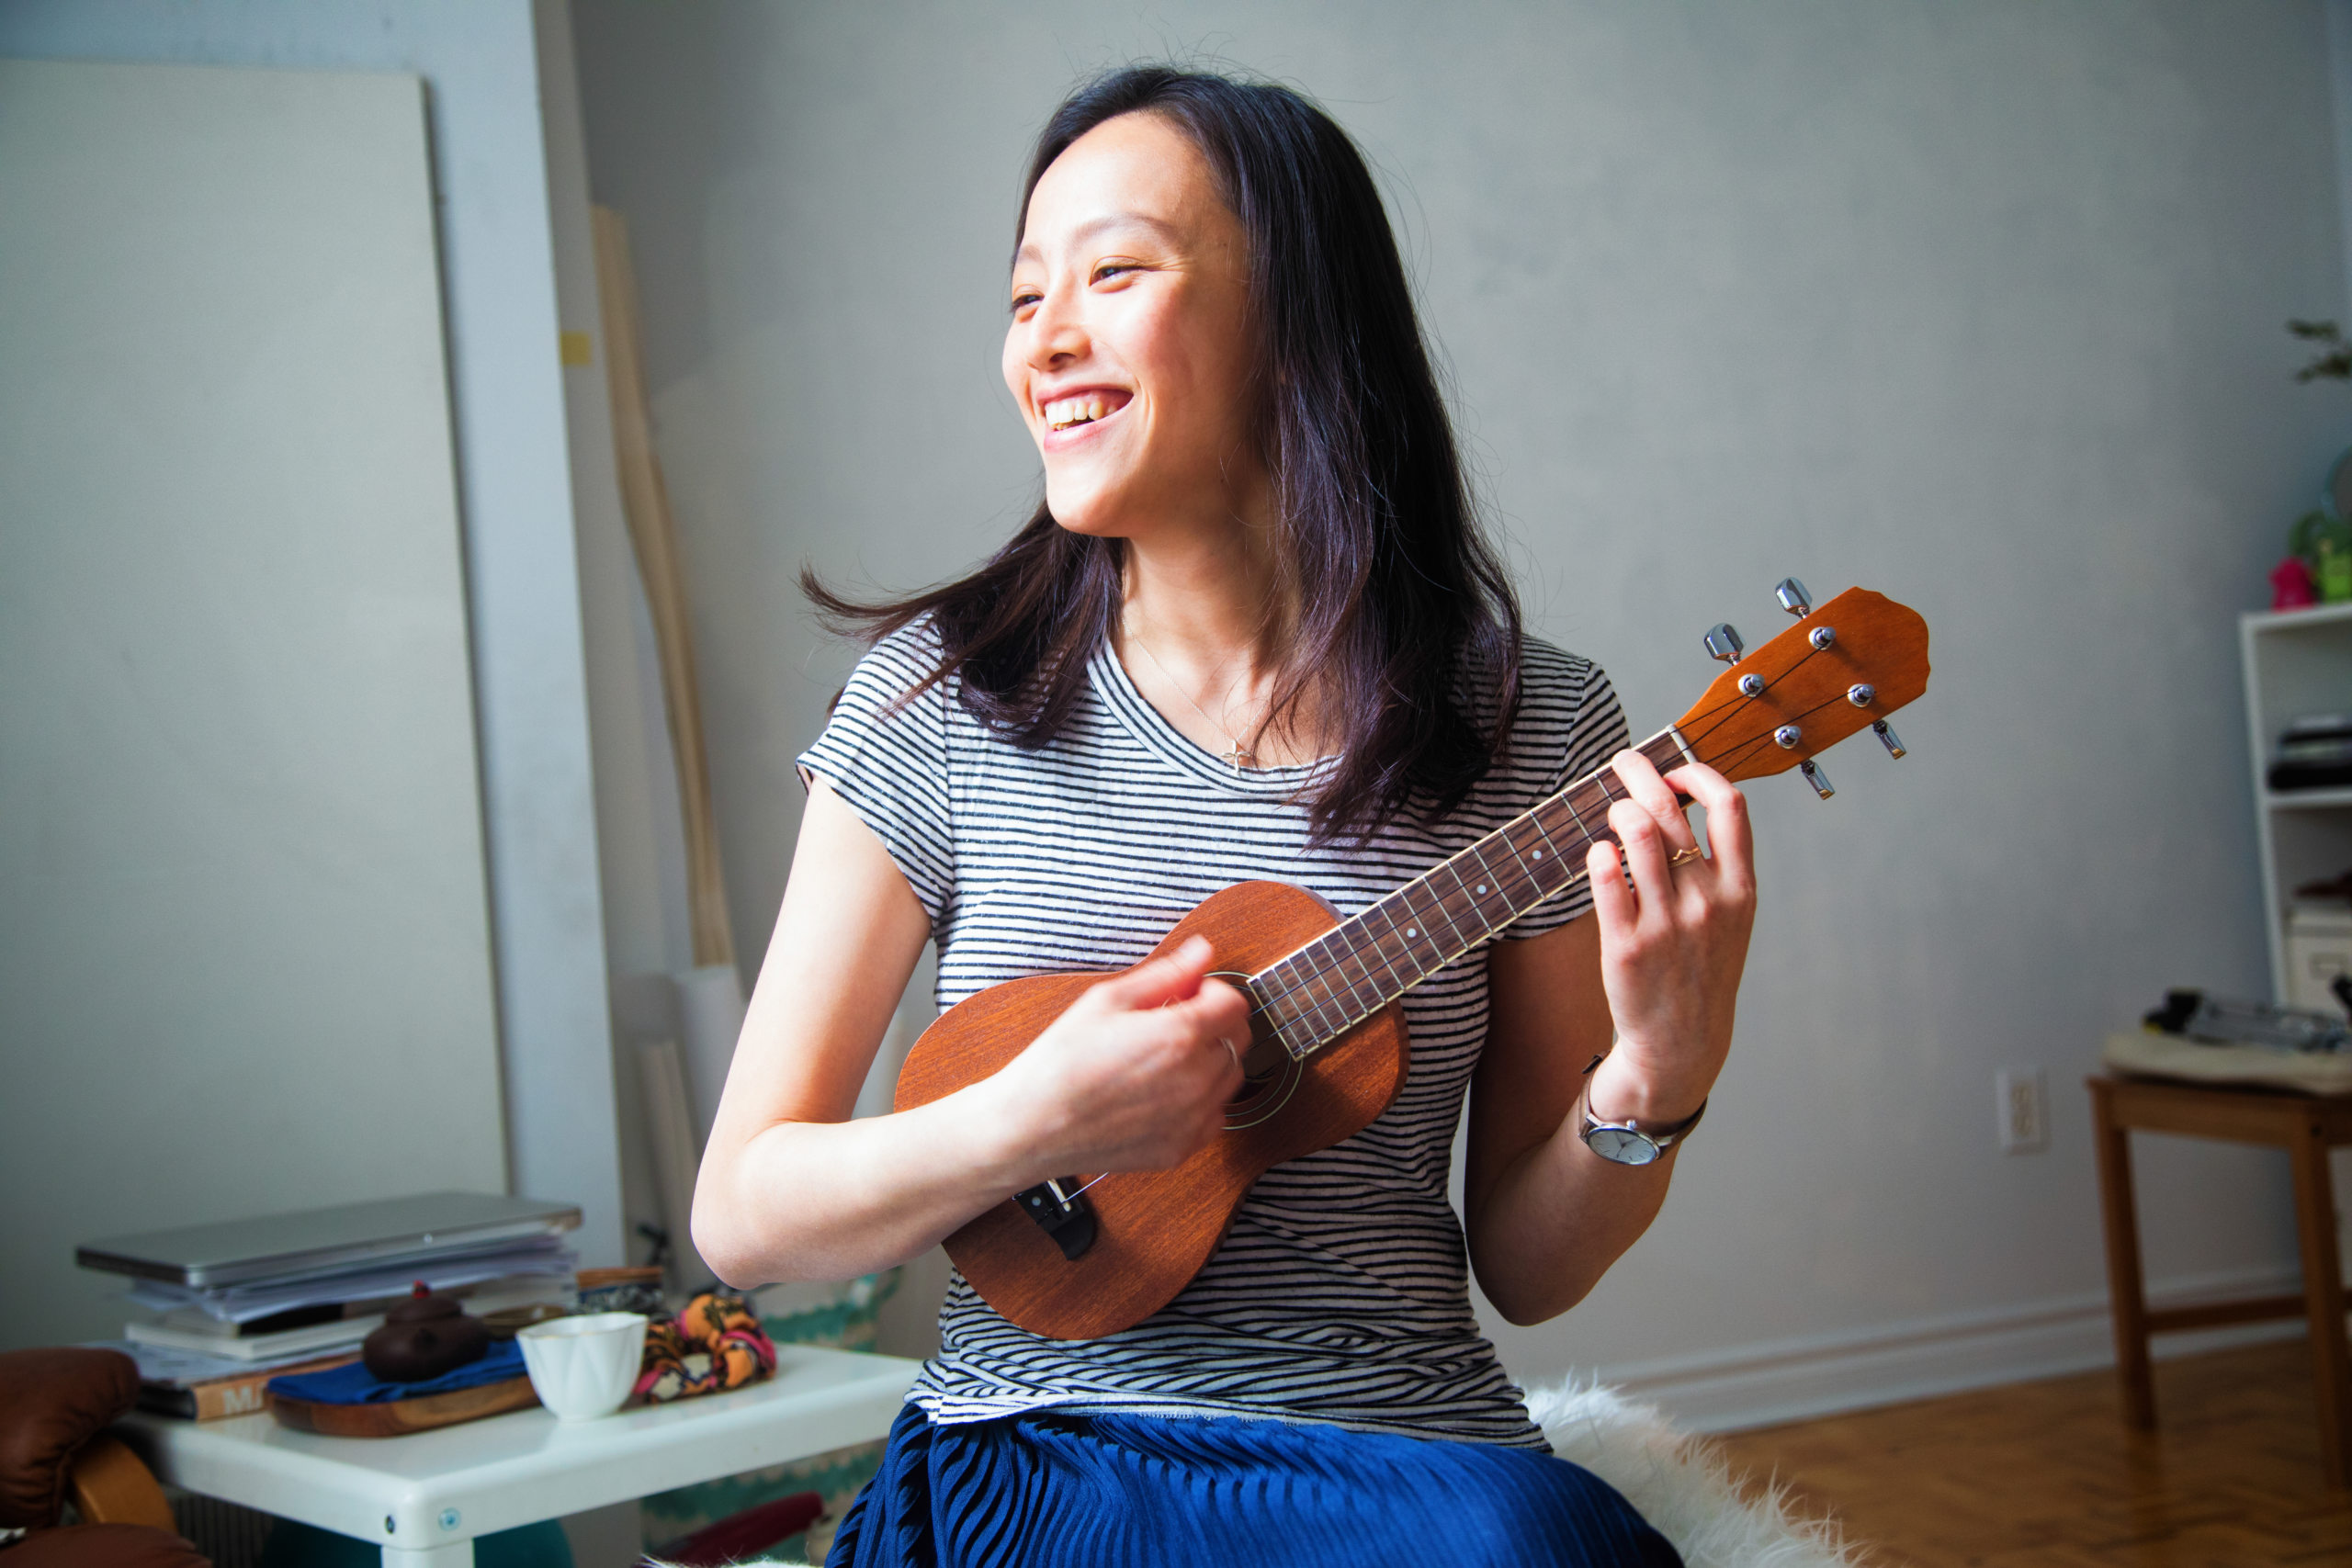 Millennial young Asian woman having fun strumming her Ukulele in her studio apartment, smiling in abandonment.